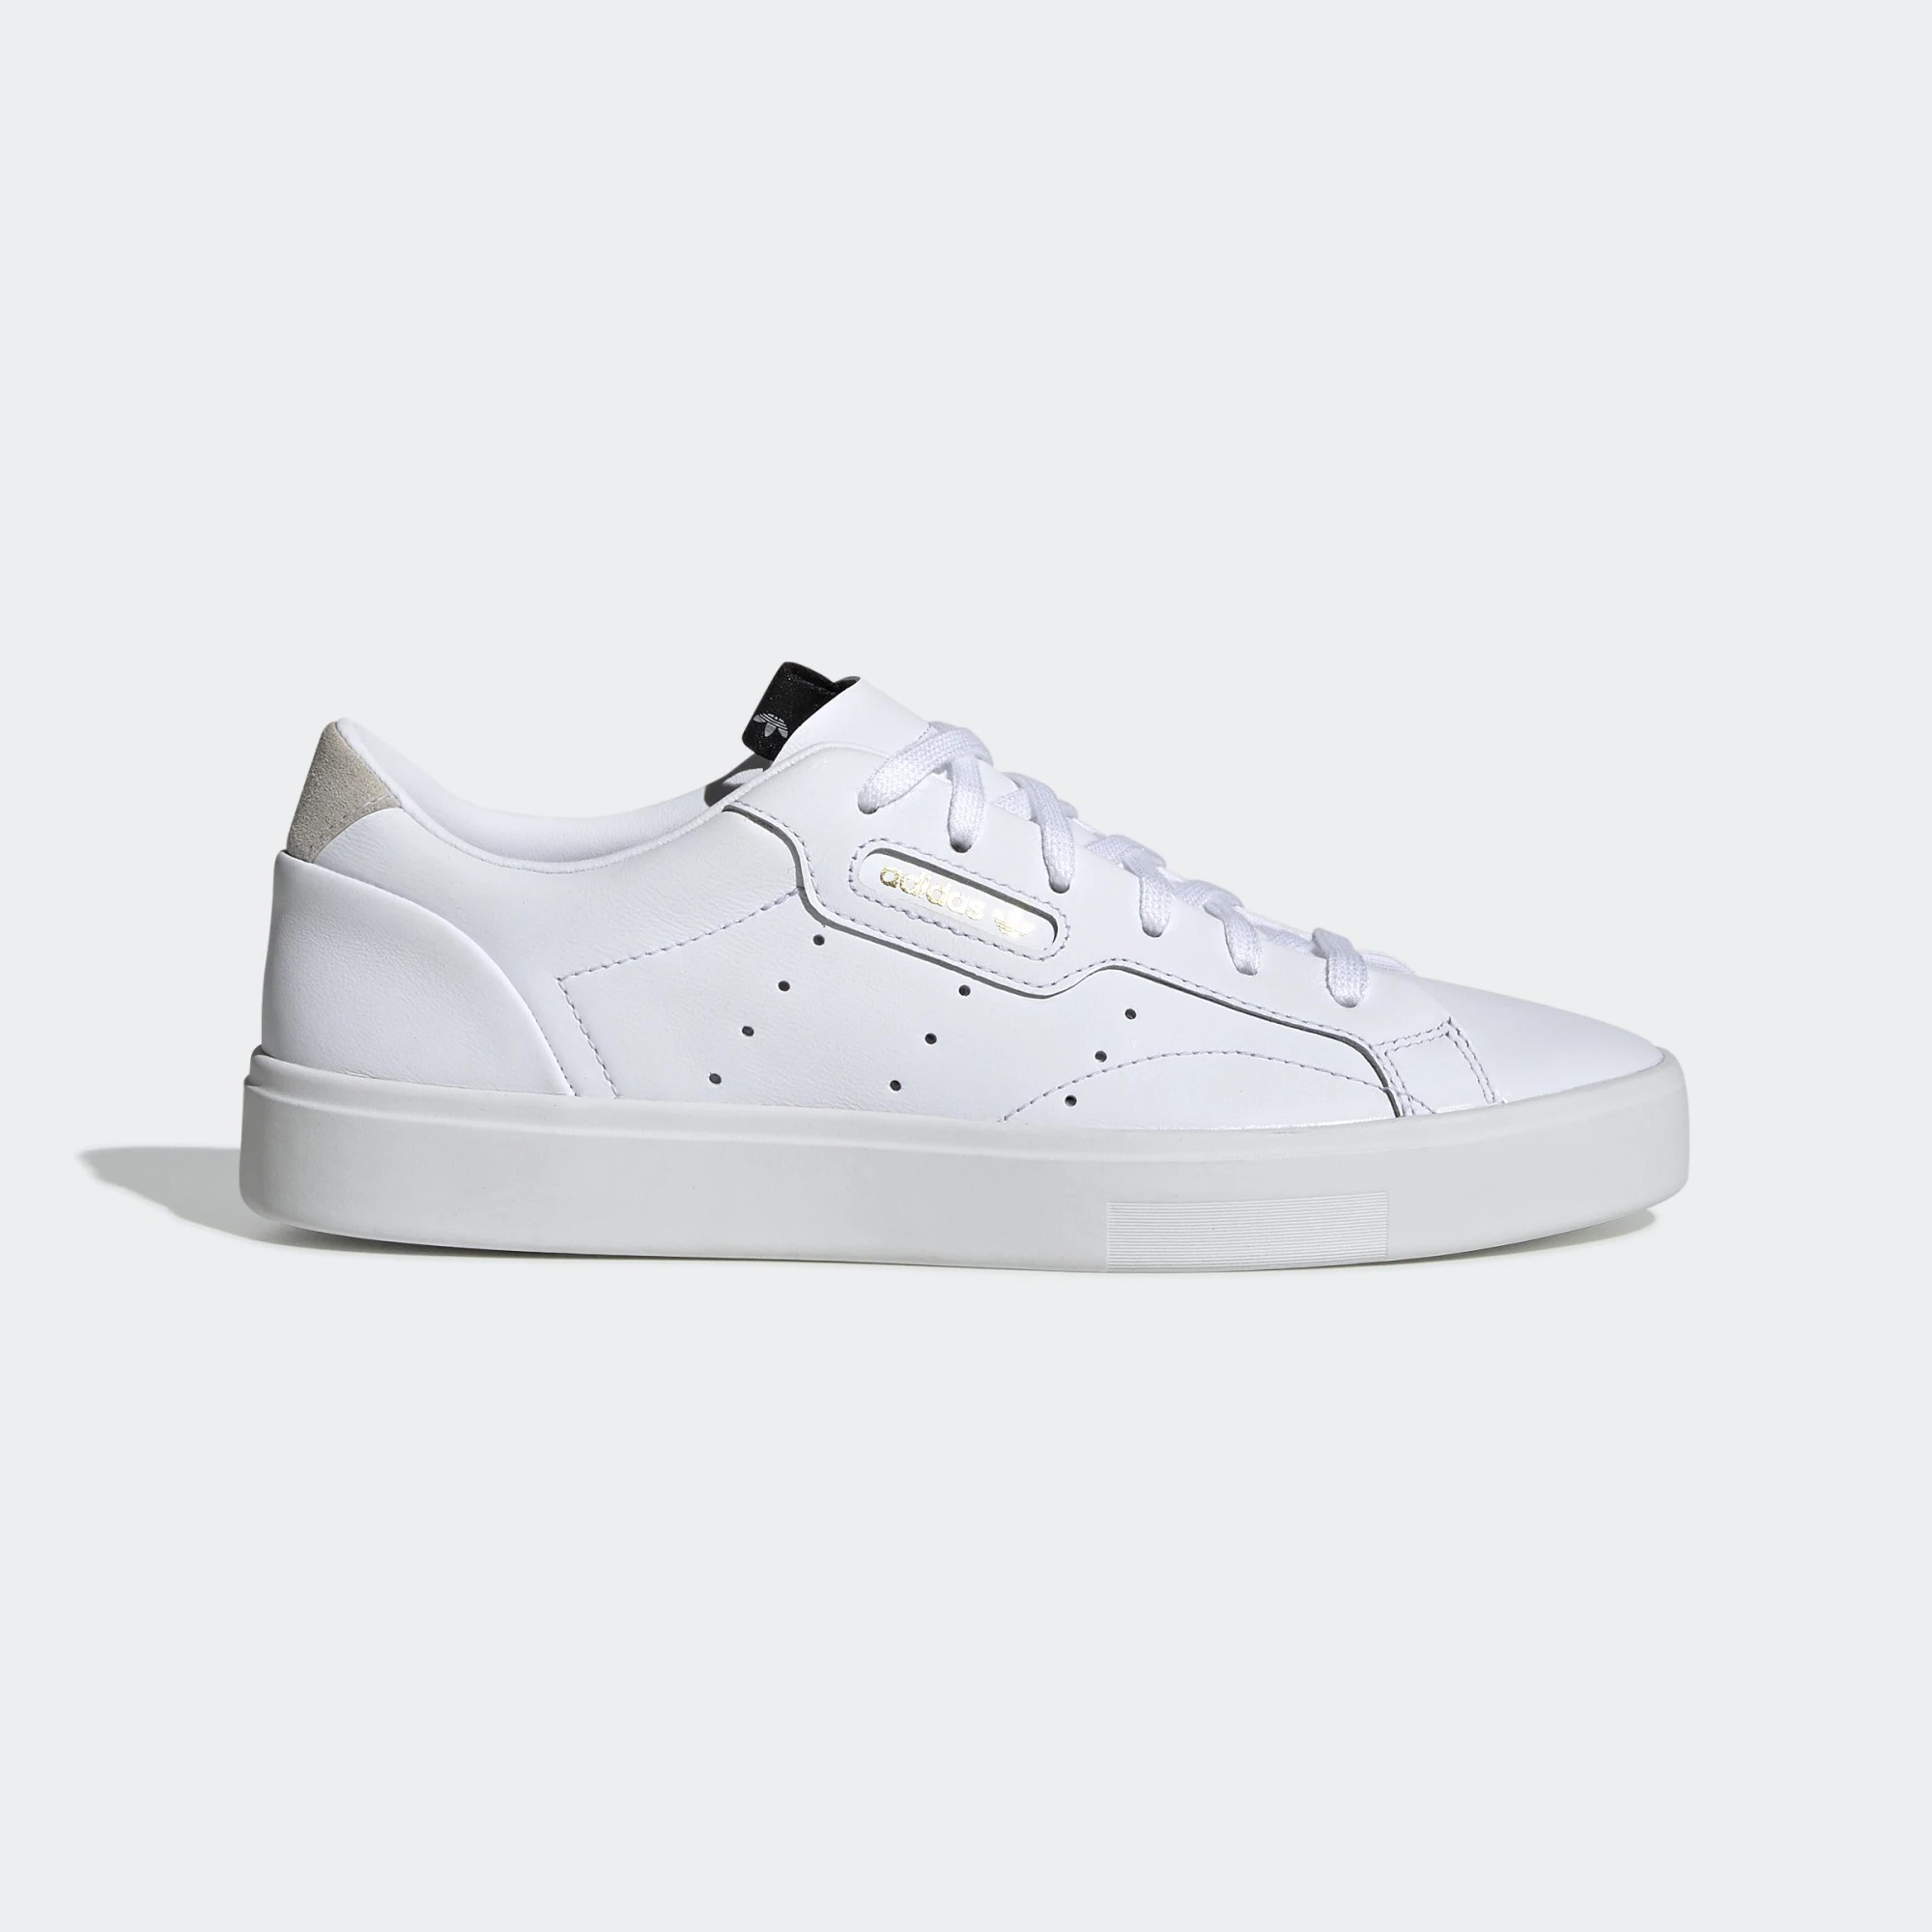 adidas Originals Sleek W White Sneakers DB3258